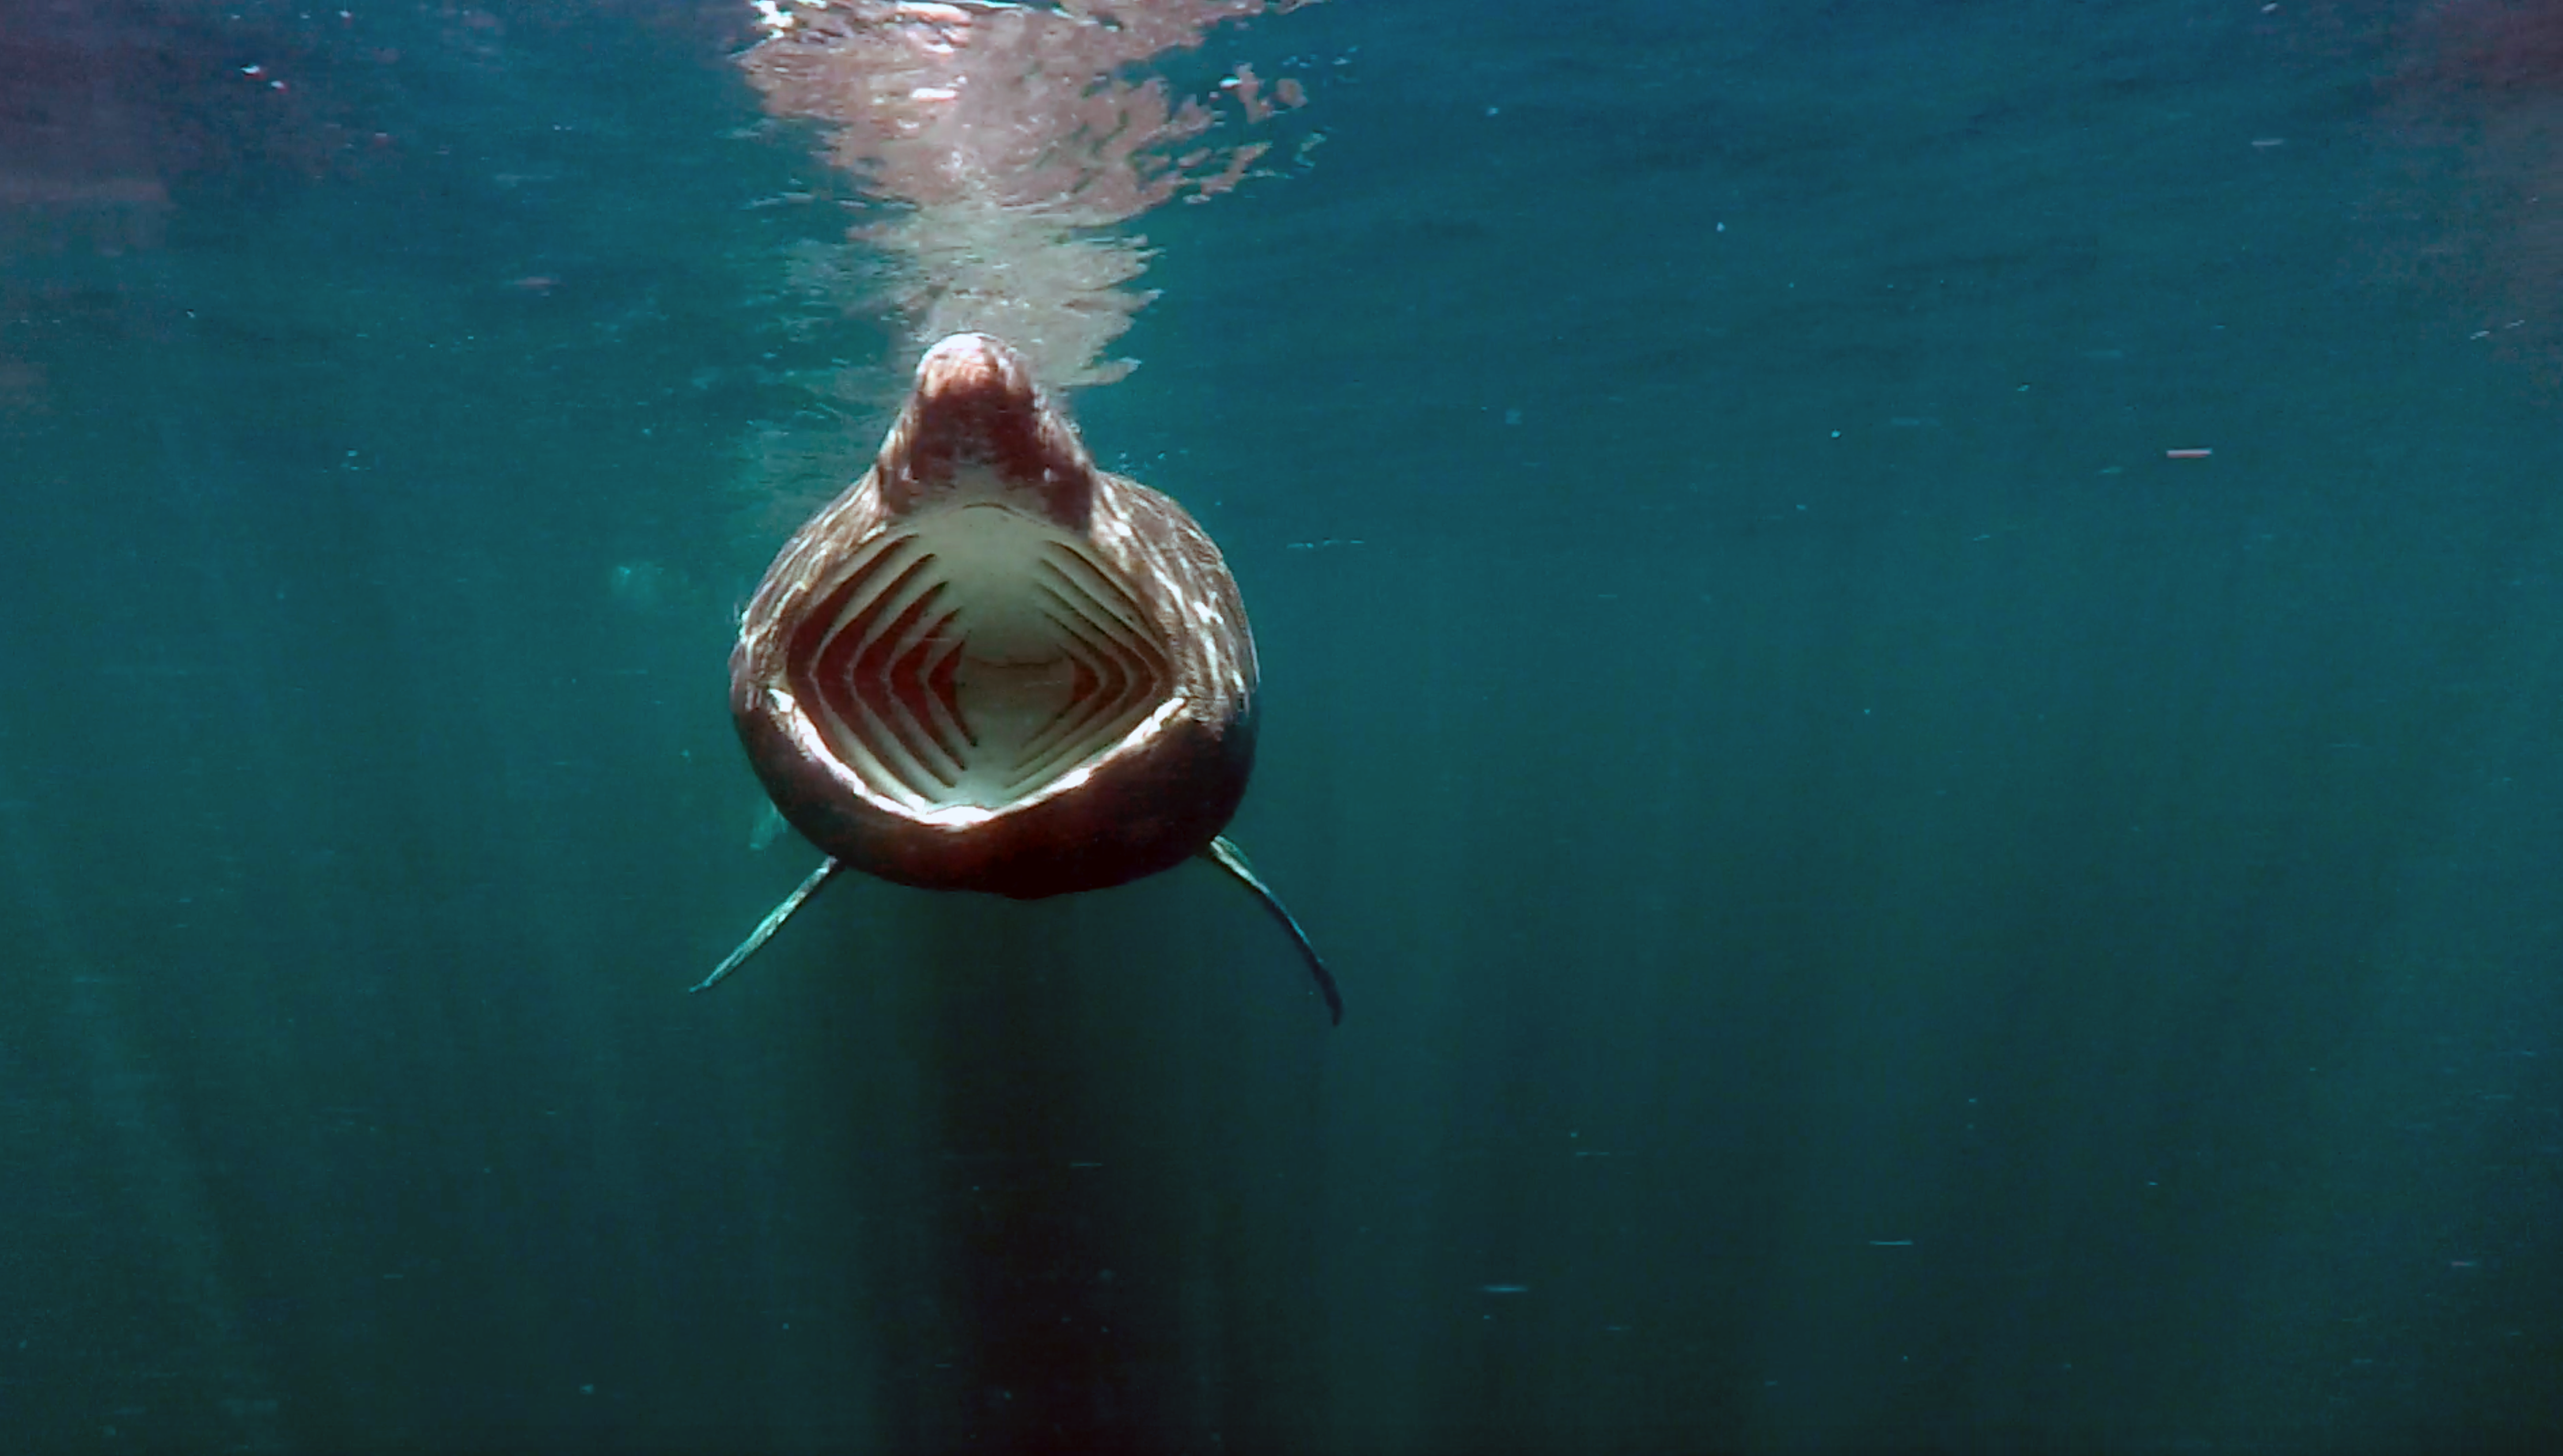 Figure 1: Basking shark feeding in the Sea of the Hebrides. © Amy Kukulya, Oceanographic Systems Lab, WHOI.